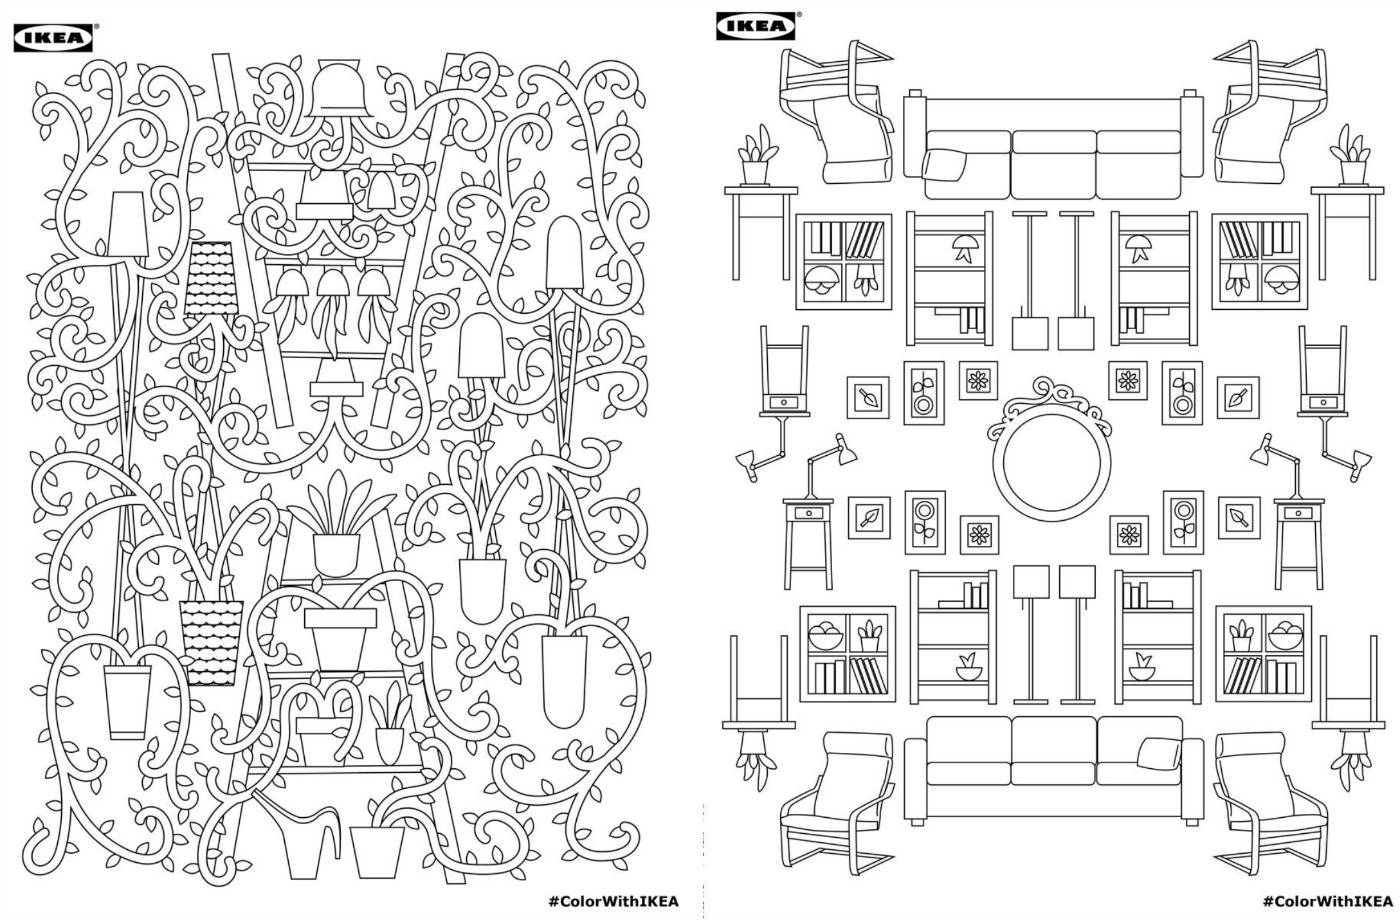 Download Ikea S Adult Coloring Book For Free